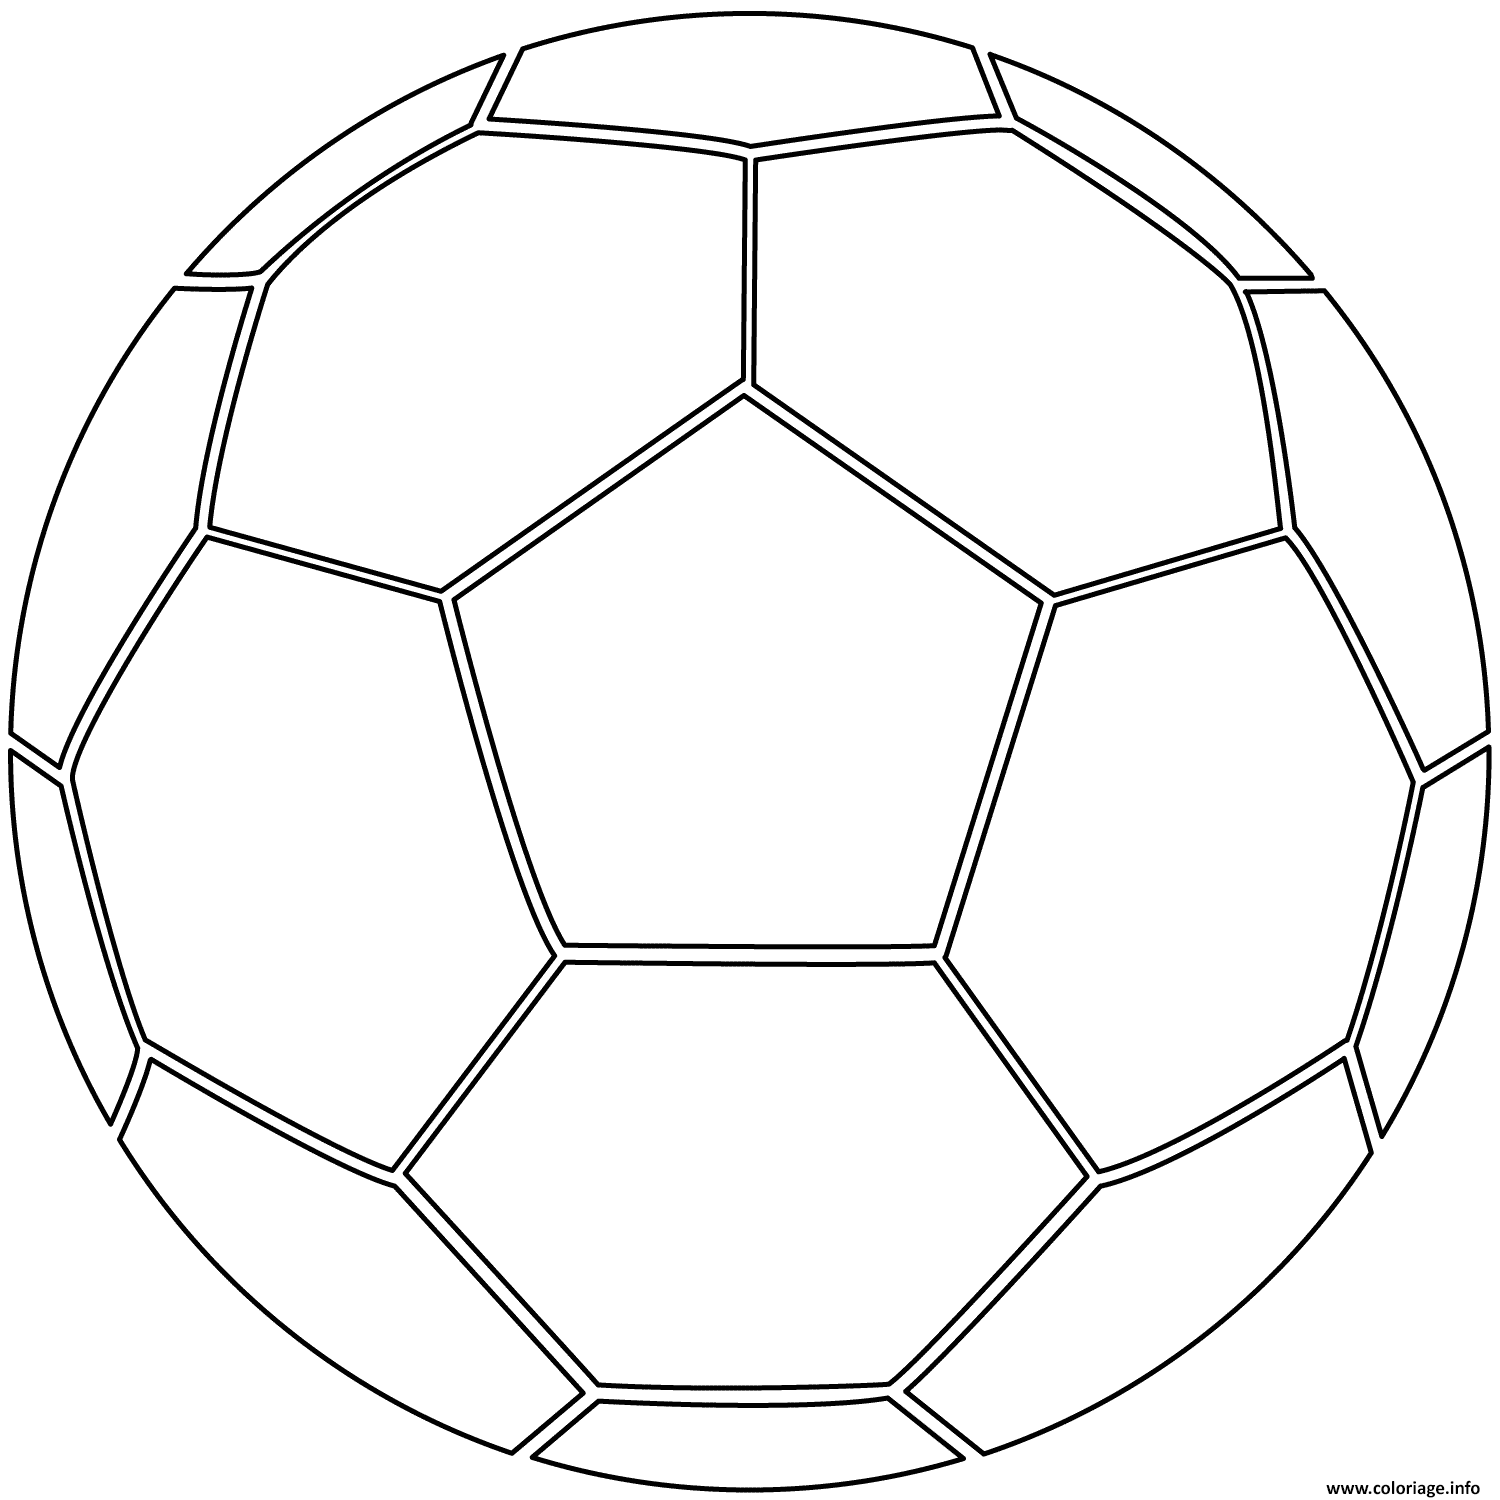 Coloriage ballon de foot soccer dessin - Coloriage de foot ...